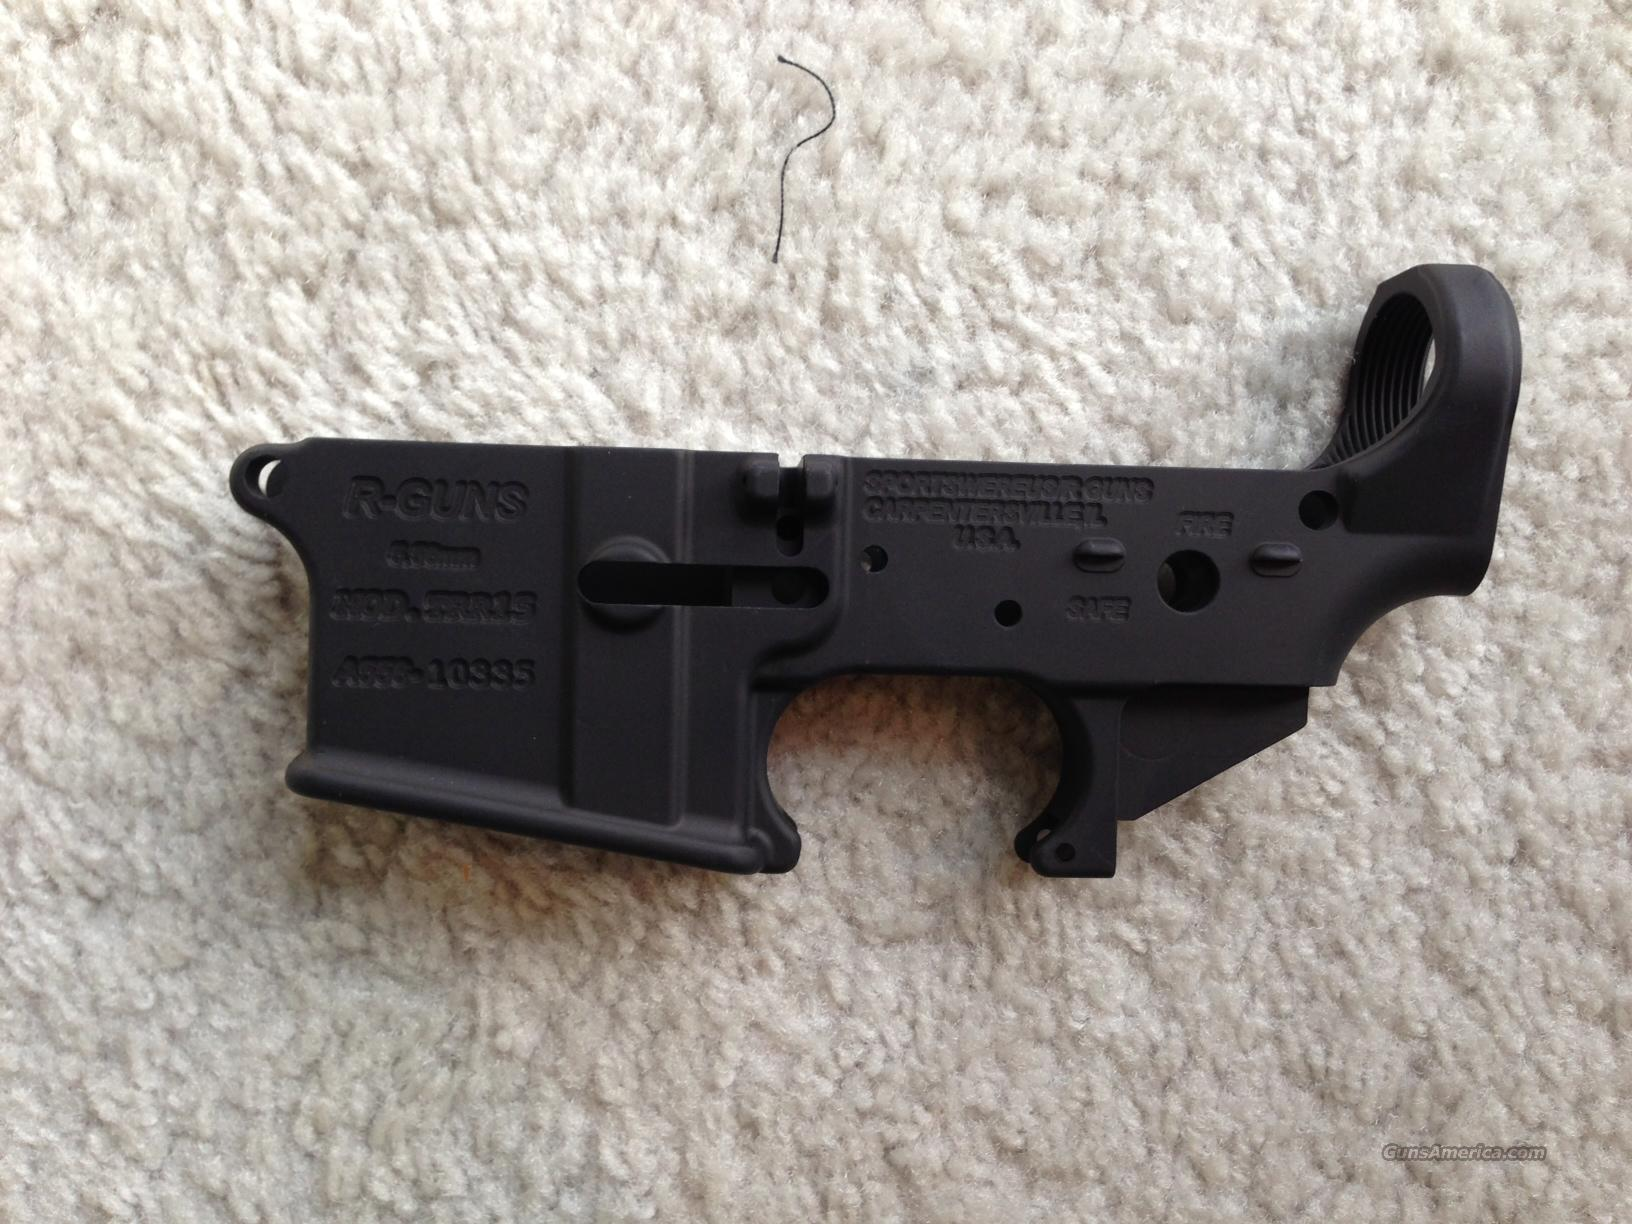 *** RGUN STRIPPED LOWER RECEIVER 5.56 NATO 223 FOR BUILD AR15 AR 15 AR-15 SEMI AUTOMATIC SEMI AUTO RIFLE NOT BUSHMASTER COLT DPMS ROCK RIVER ARMS  Guns > Rifles > S Misc Rifles